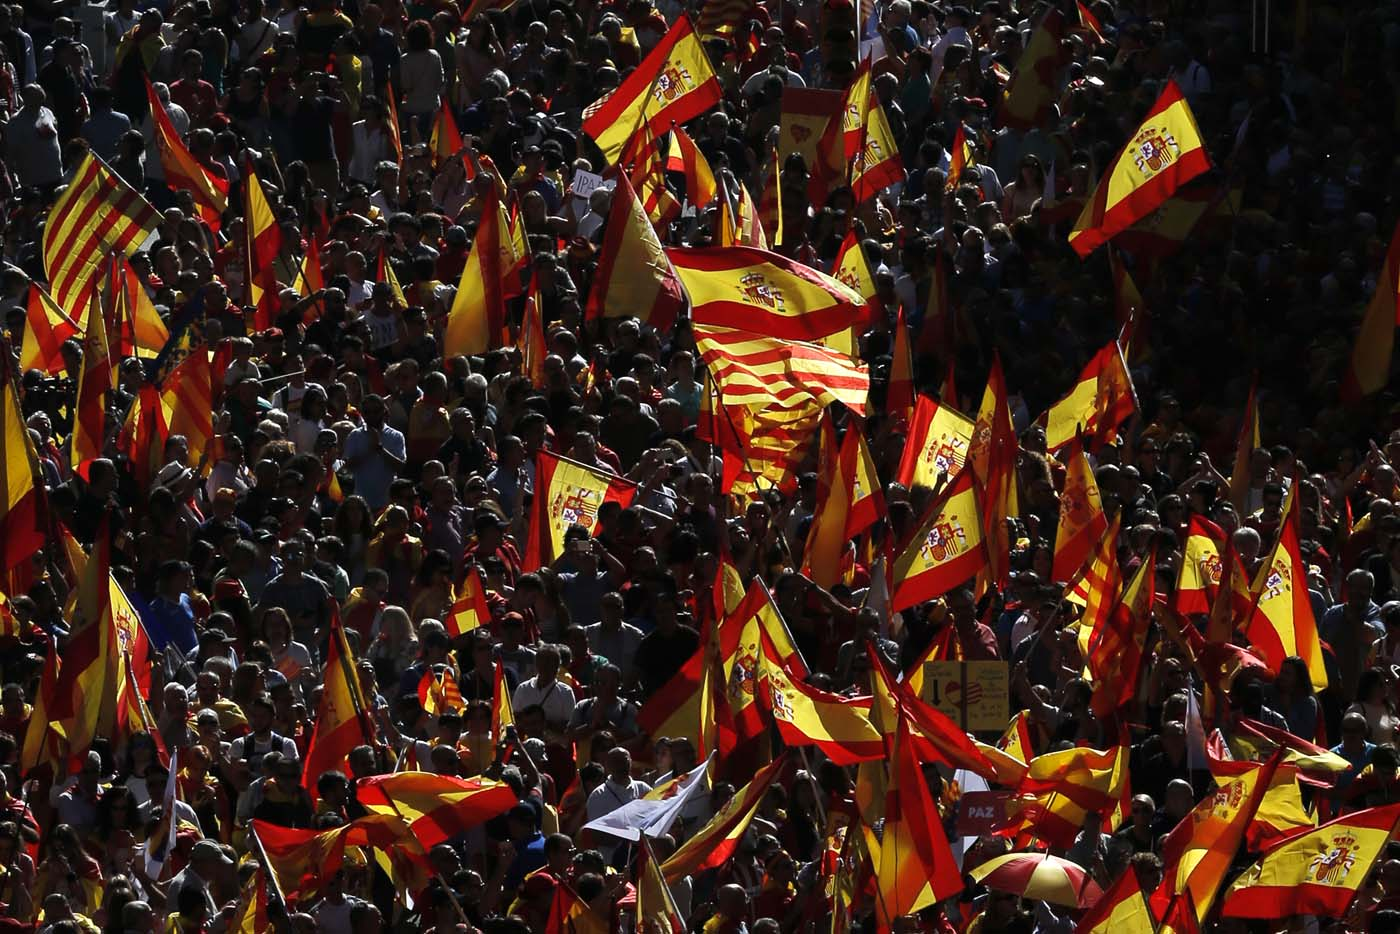 """Protesters hold Spanish and Catalan flags during a demonstration called by """"Societat Civil Catalana"""" (Catalan Civil Society) to support the unity of Spain on October 8, 2017 in Barcelona. Spain braced for more protests despite tentative signs that the sides may be seeking to defuse the crisis after Madrid offered a first apology to Catalans injured by police during their outlawed independence vote. / AFP PHOTO / PAU BARRENA"""